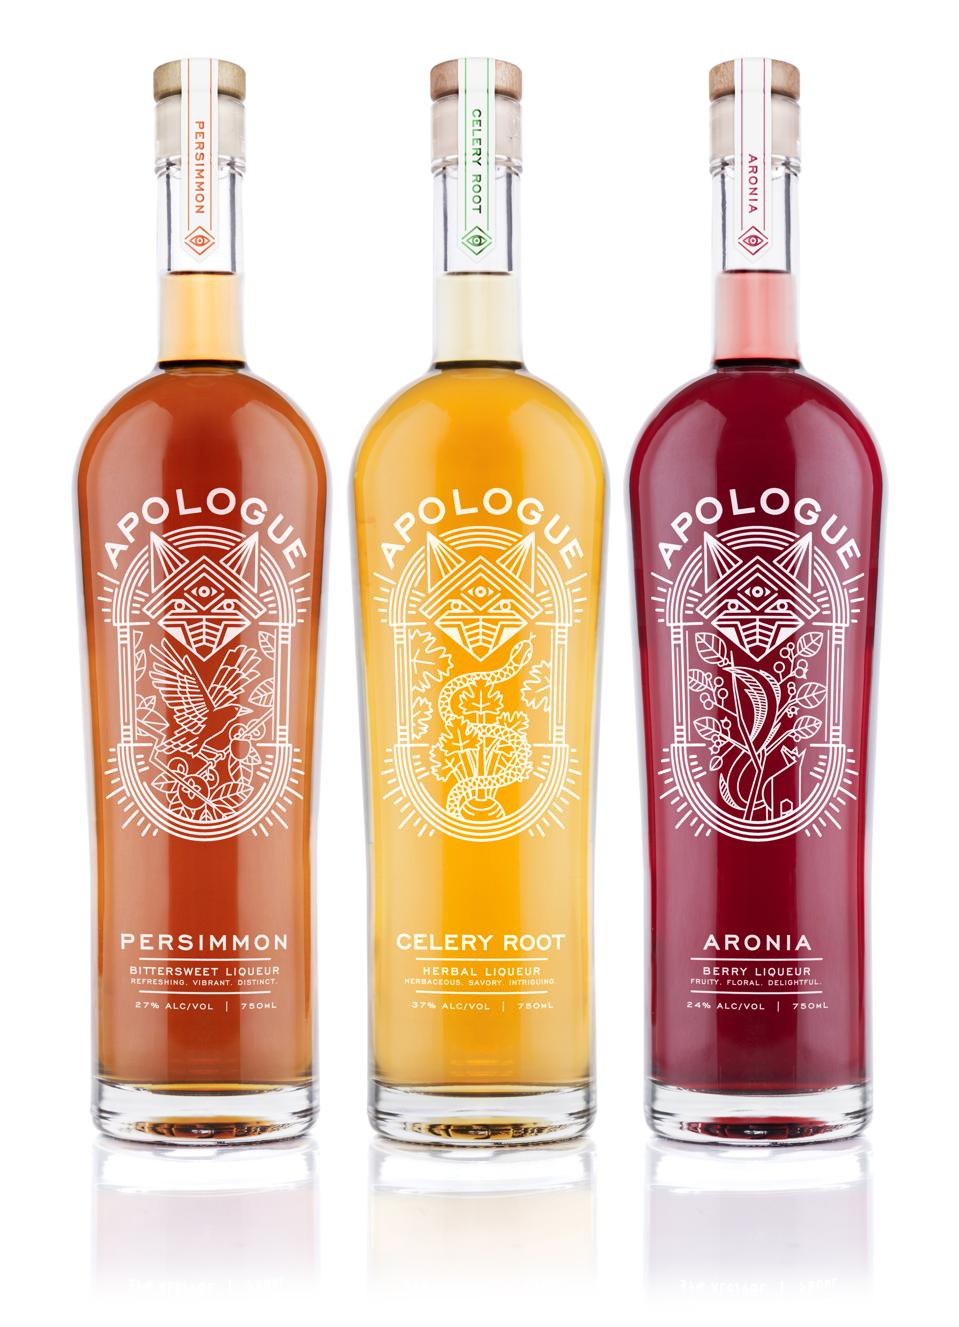 The Apologue family of liqueurs